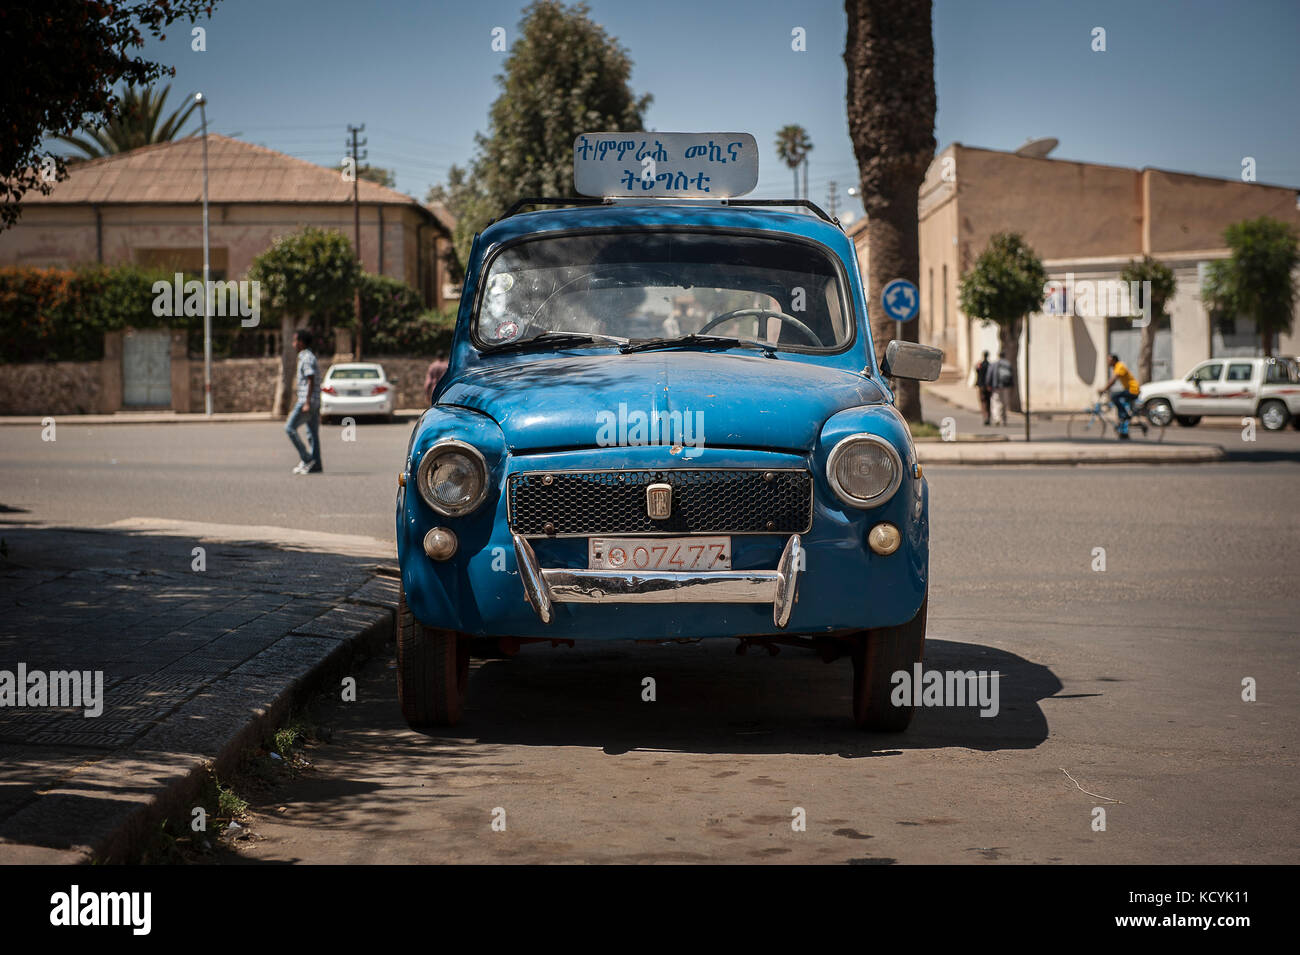 voiture ancienne stock photos voiture ancienne stock images alamy. Black Bedroom Furniture Sets. Home Design Ideas